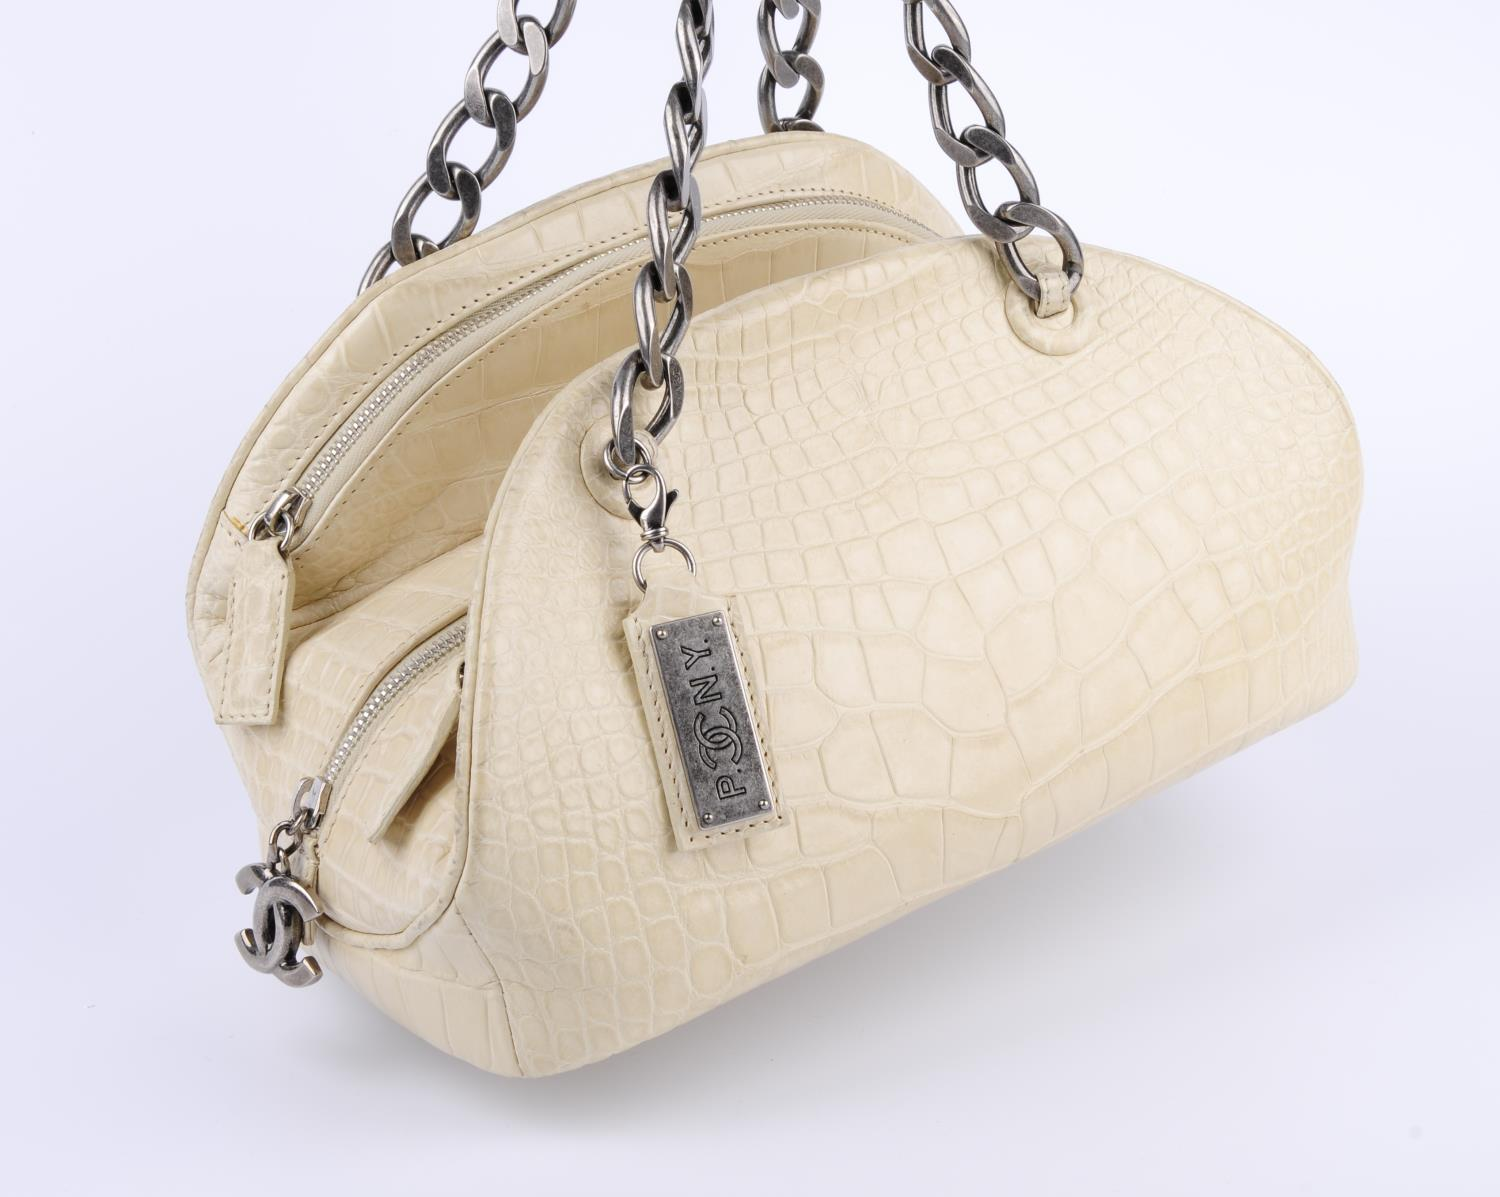 Lot 41 - CHANEL - a Paris New York Alligator Bowling handbag.